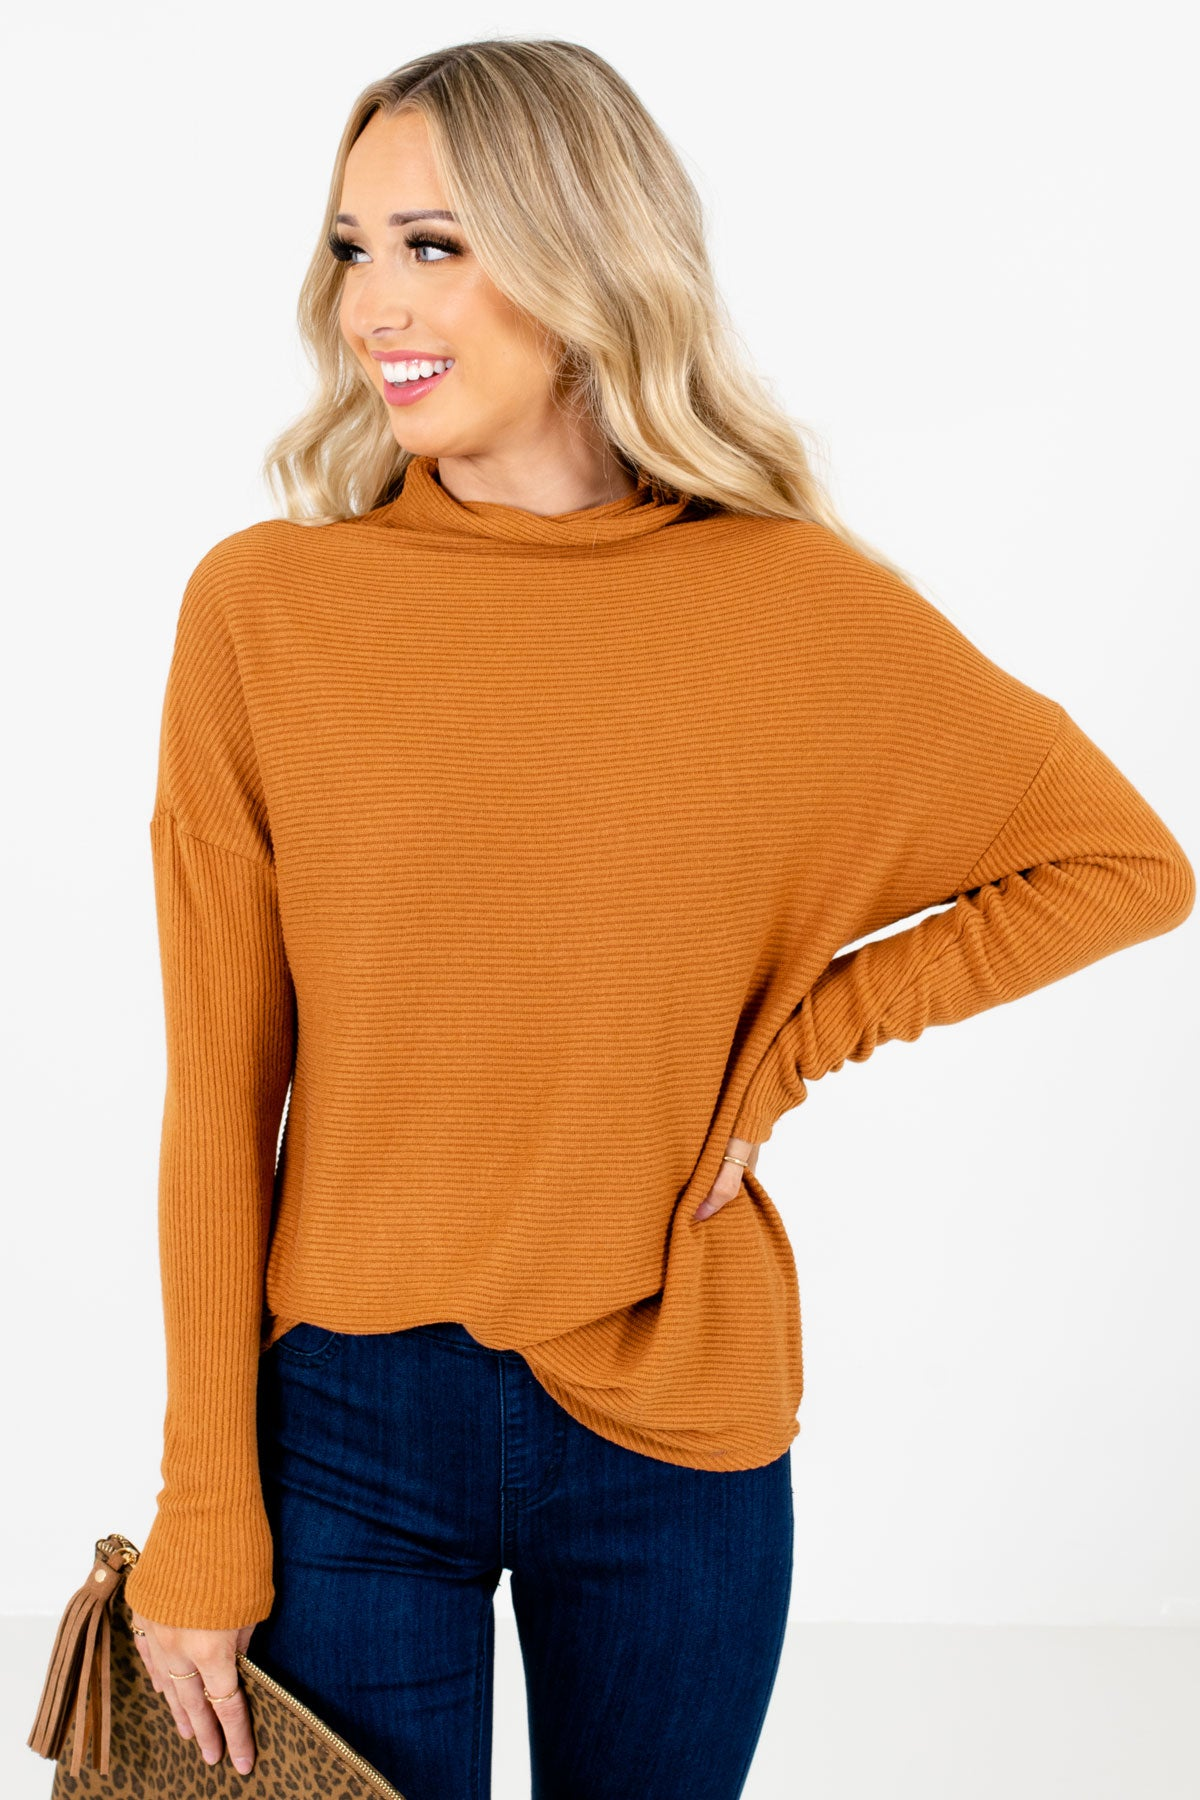 Tawny Orange Cowl Neck Style Boutique Sweaters for Women